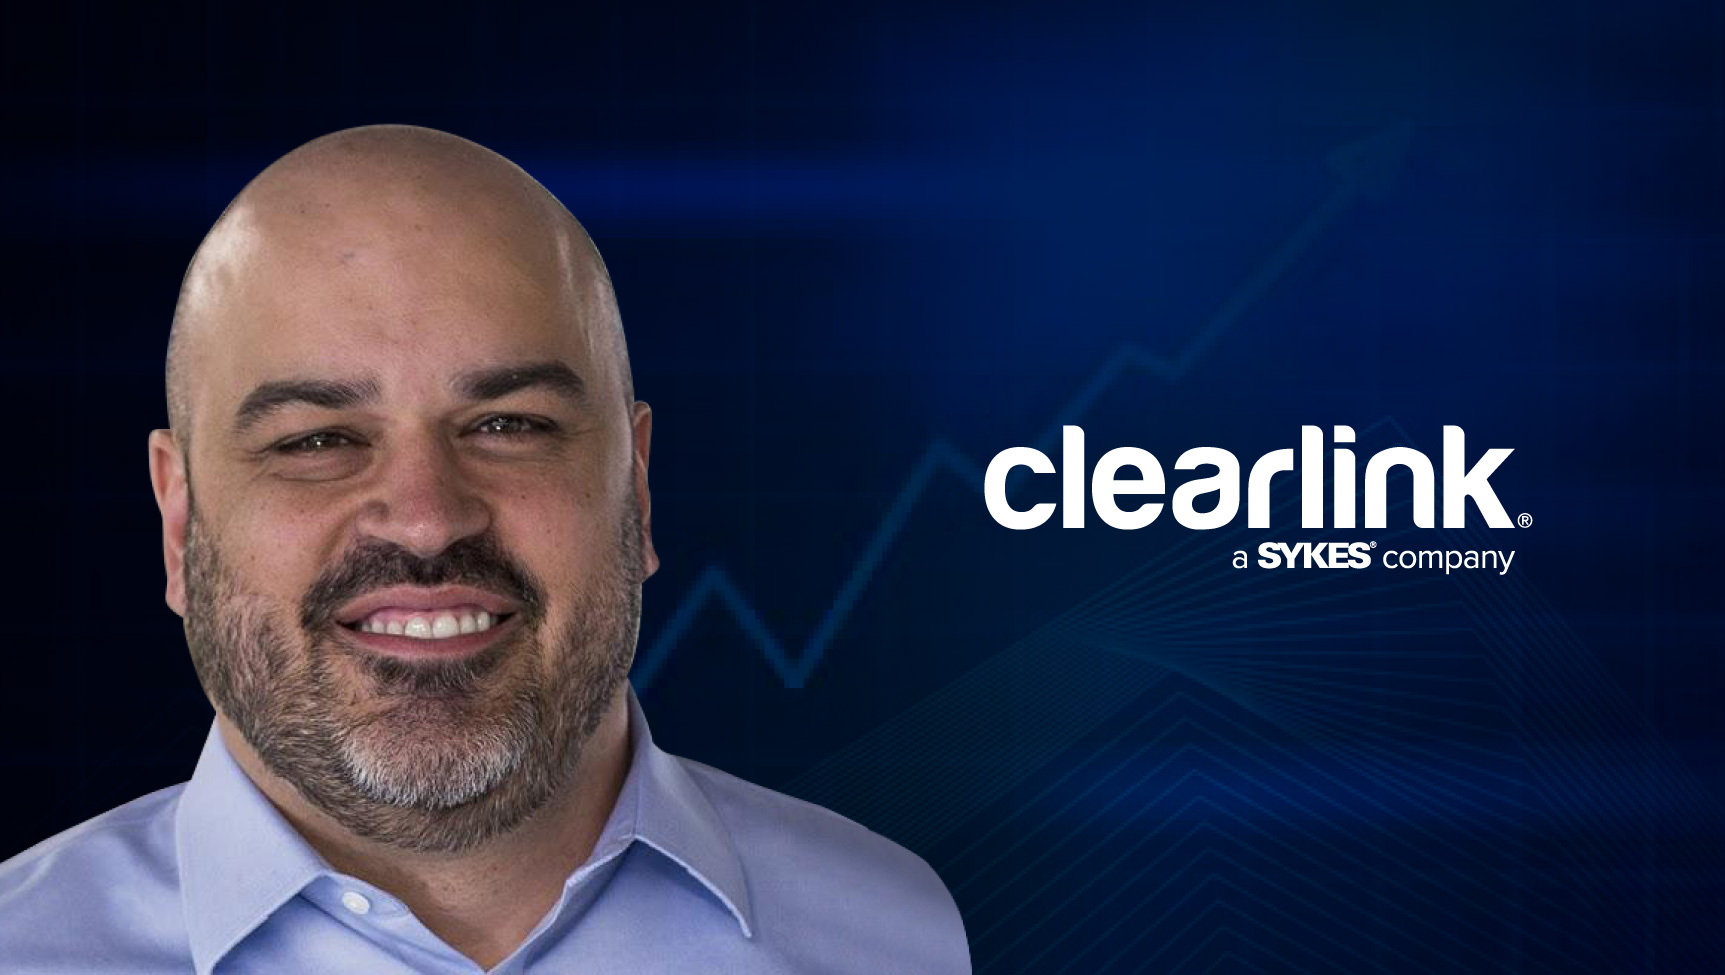 SalesTech Interview with Adam Mergist, Chief Sales Officer at Clearlink